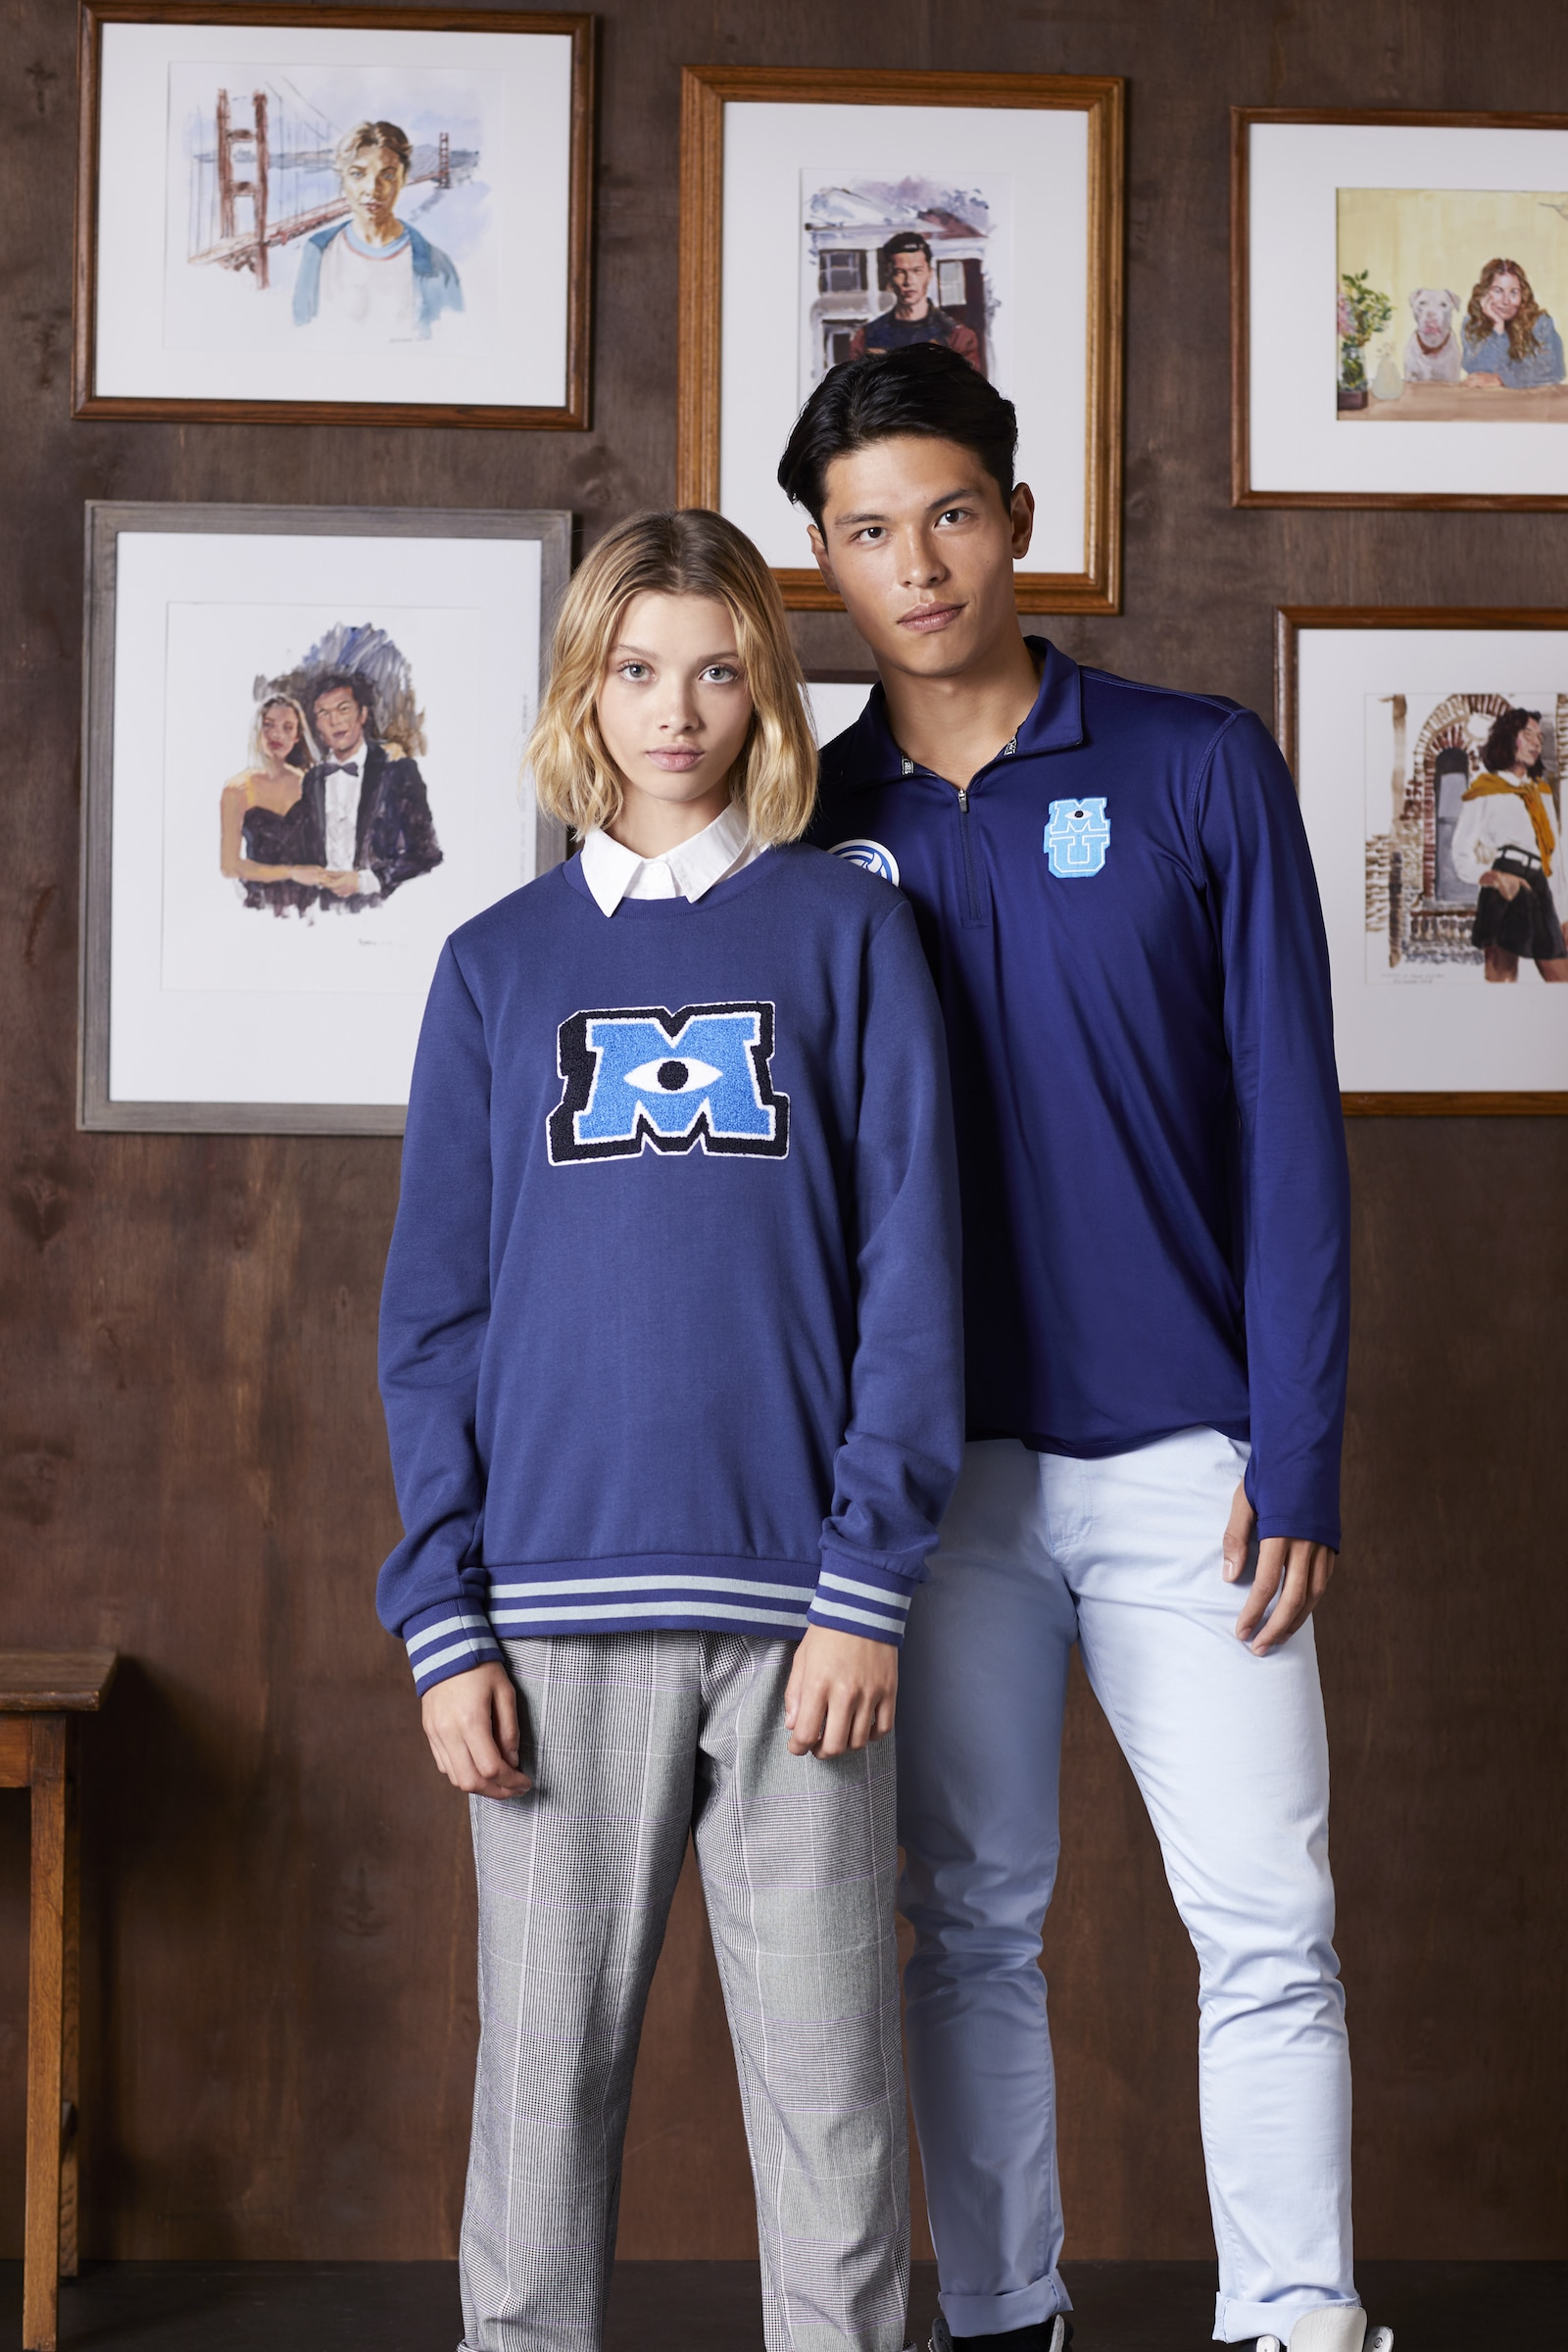 Models wearing clothing from the Monsters University Collection